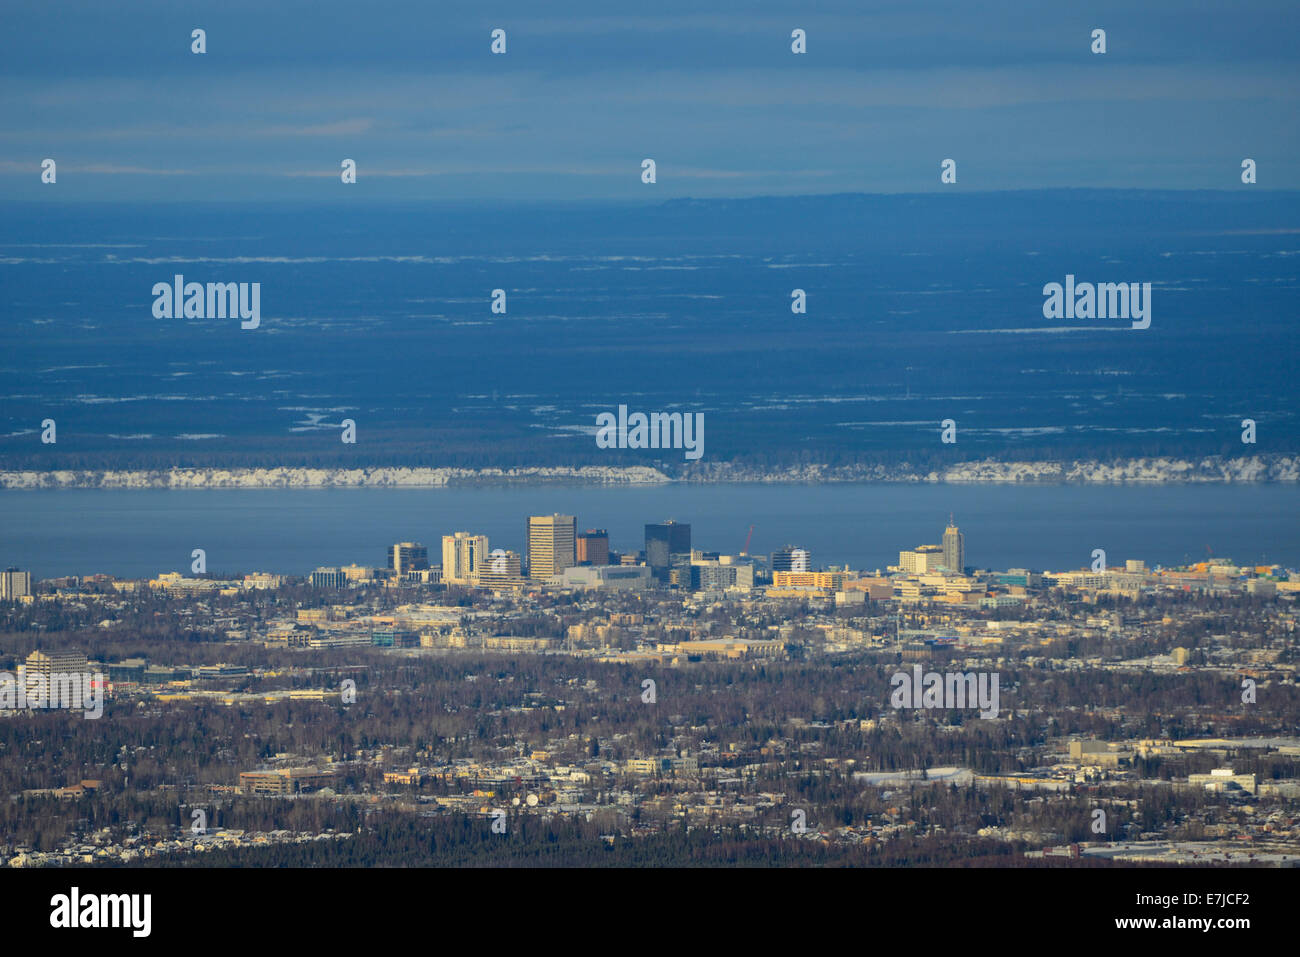 USA, United States, America, Far North, Alaska, Anchorage, city, overview - Stock Image